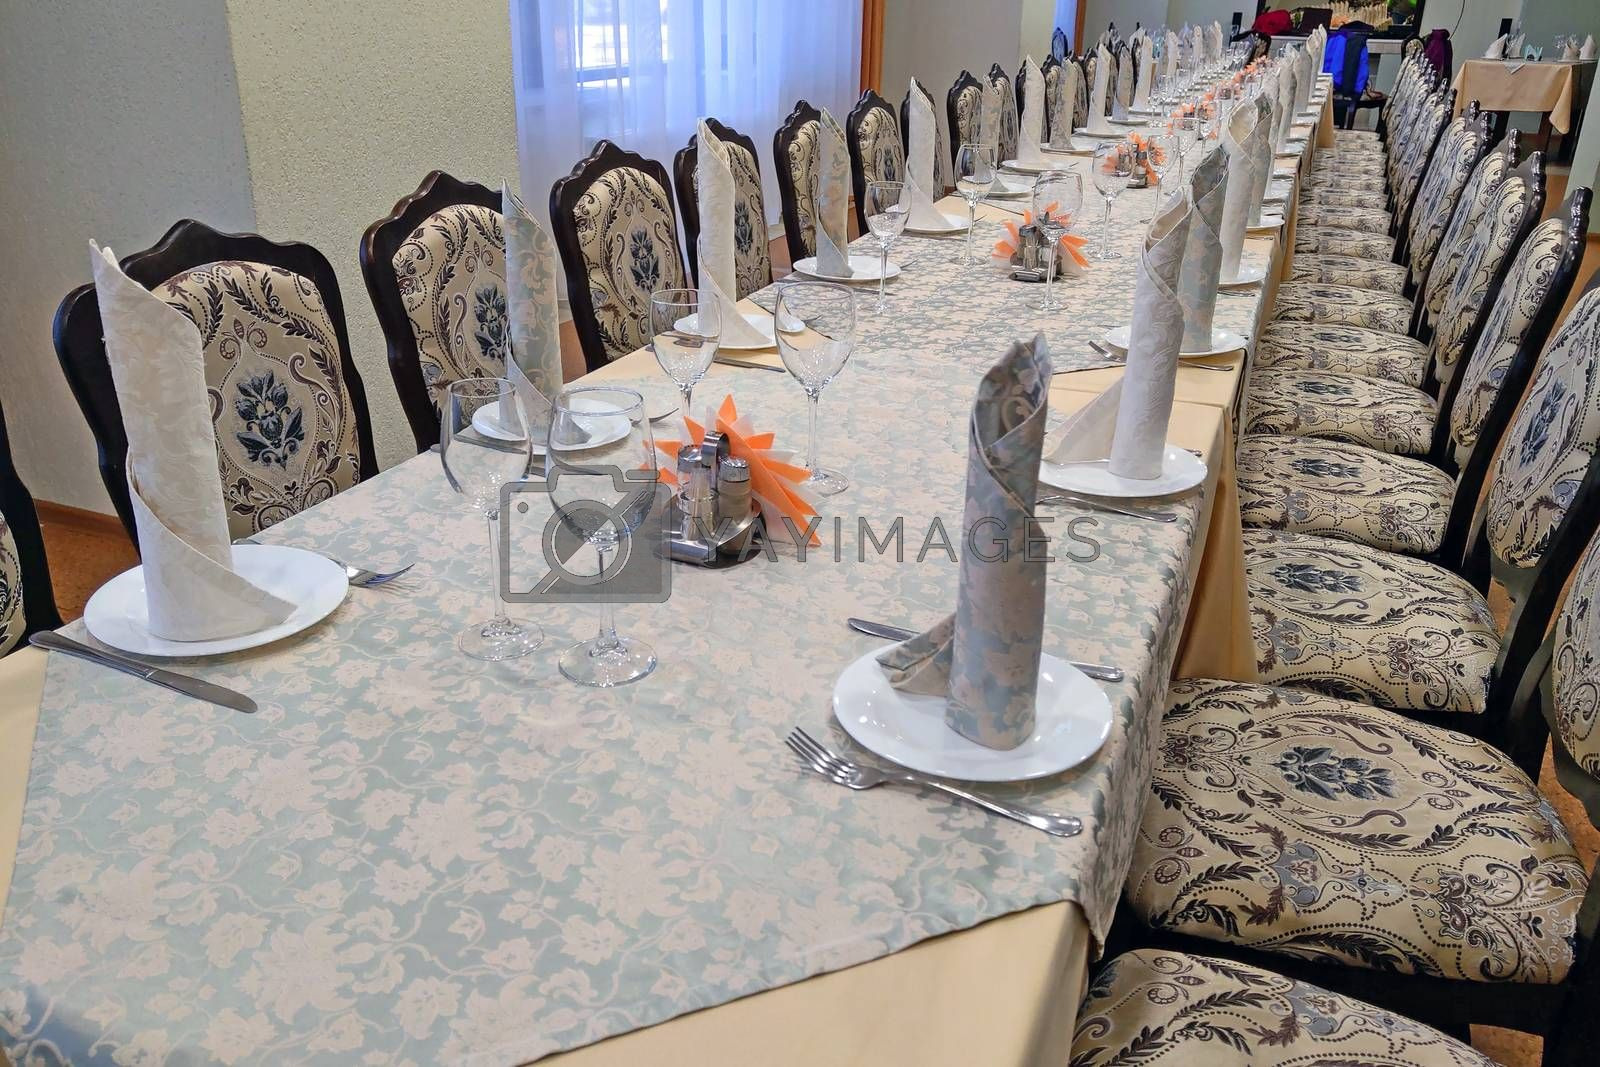 Banquet table for special events. Banqueting hall